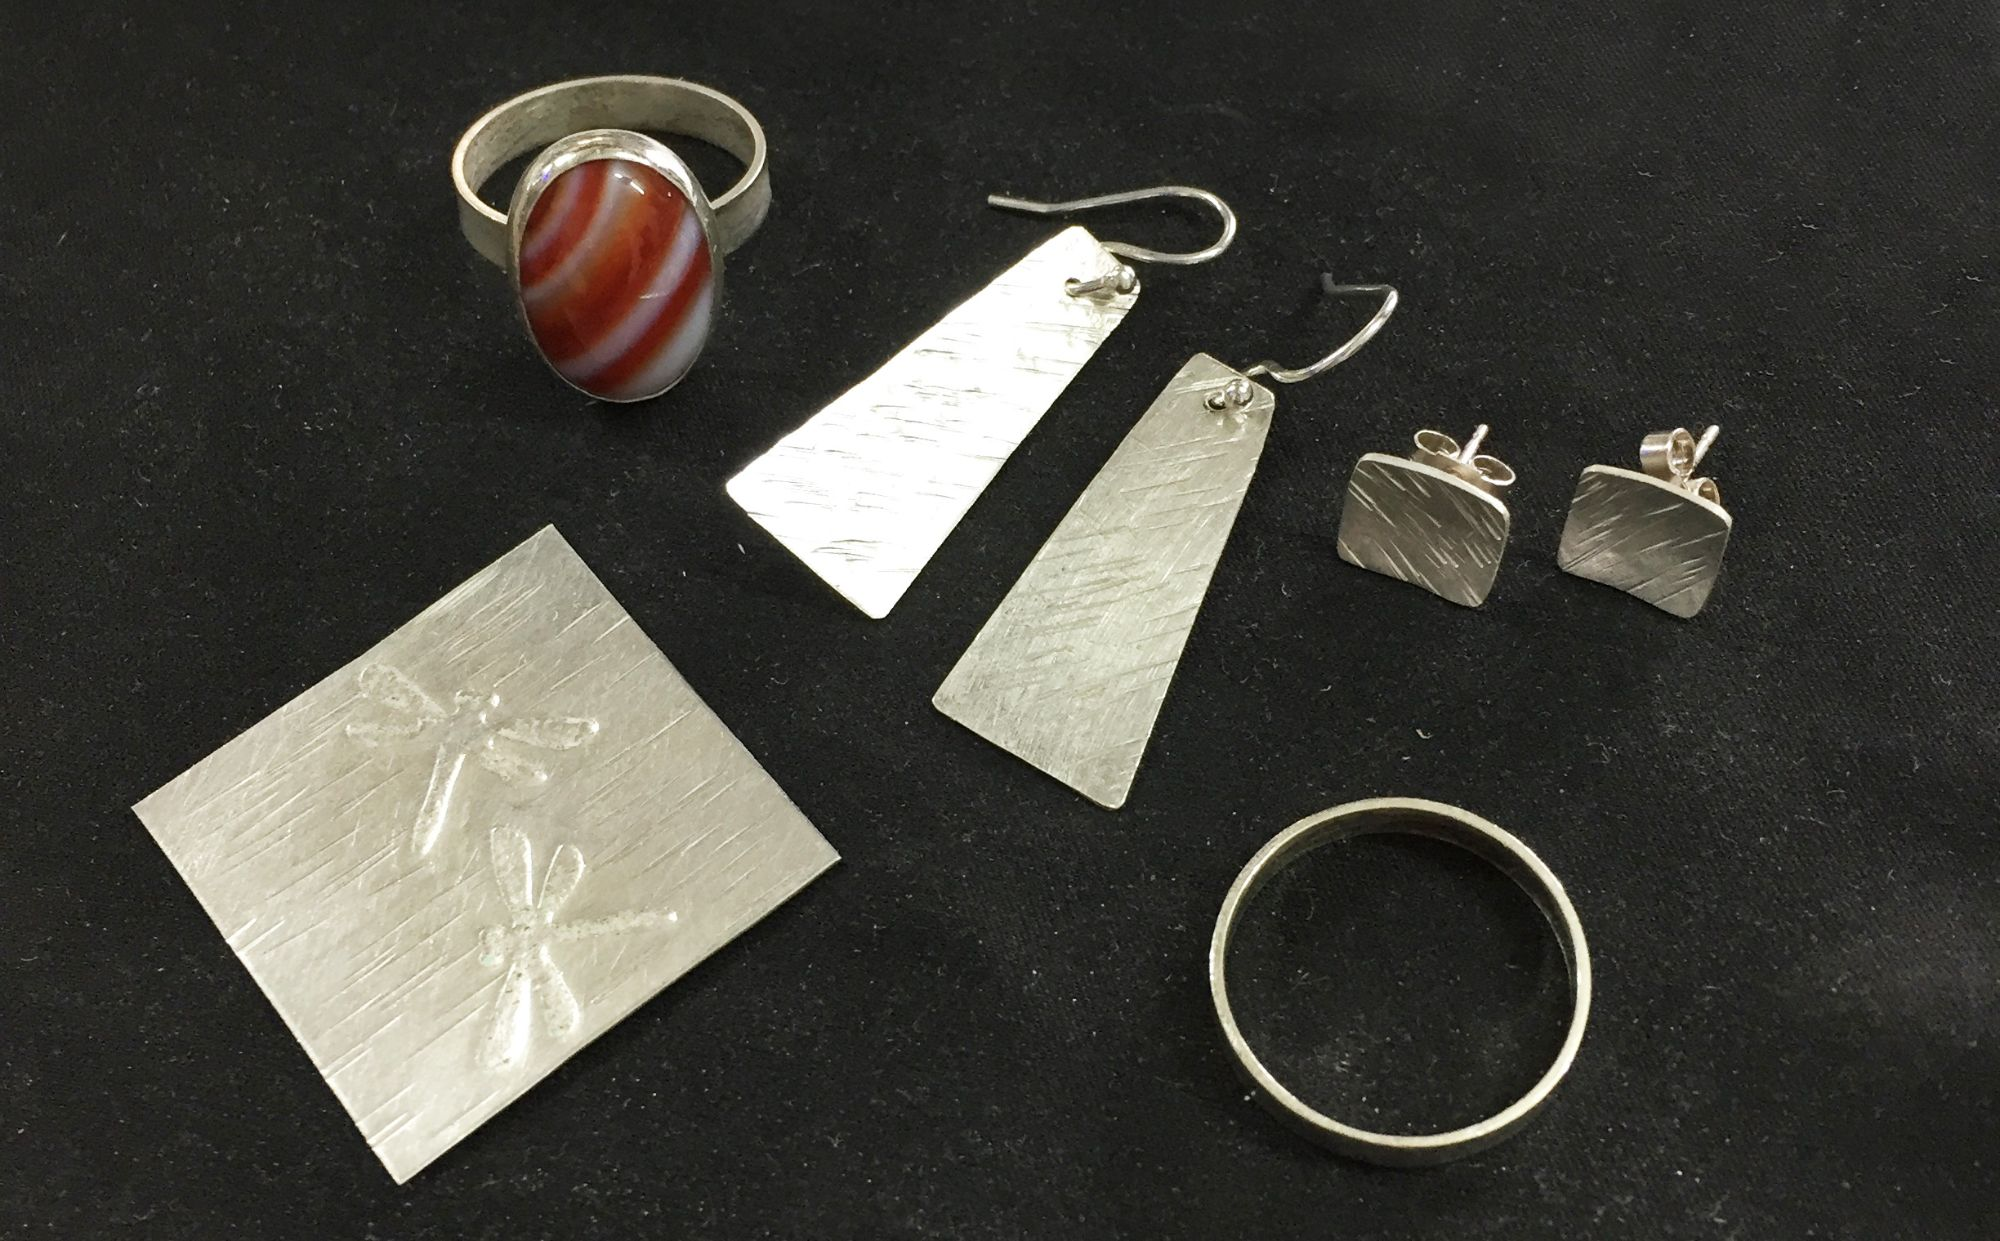 Beginners silver jewellery course projects